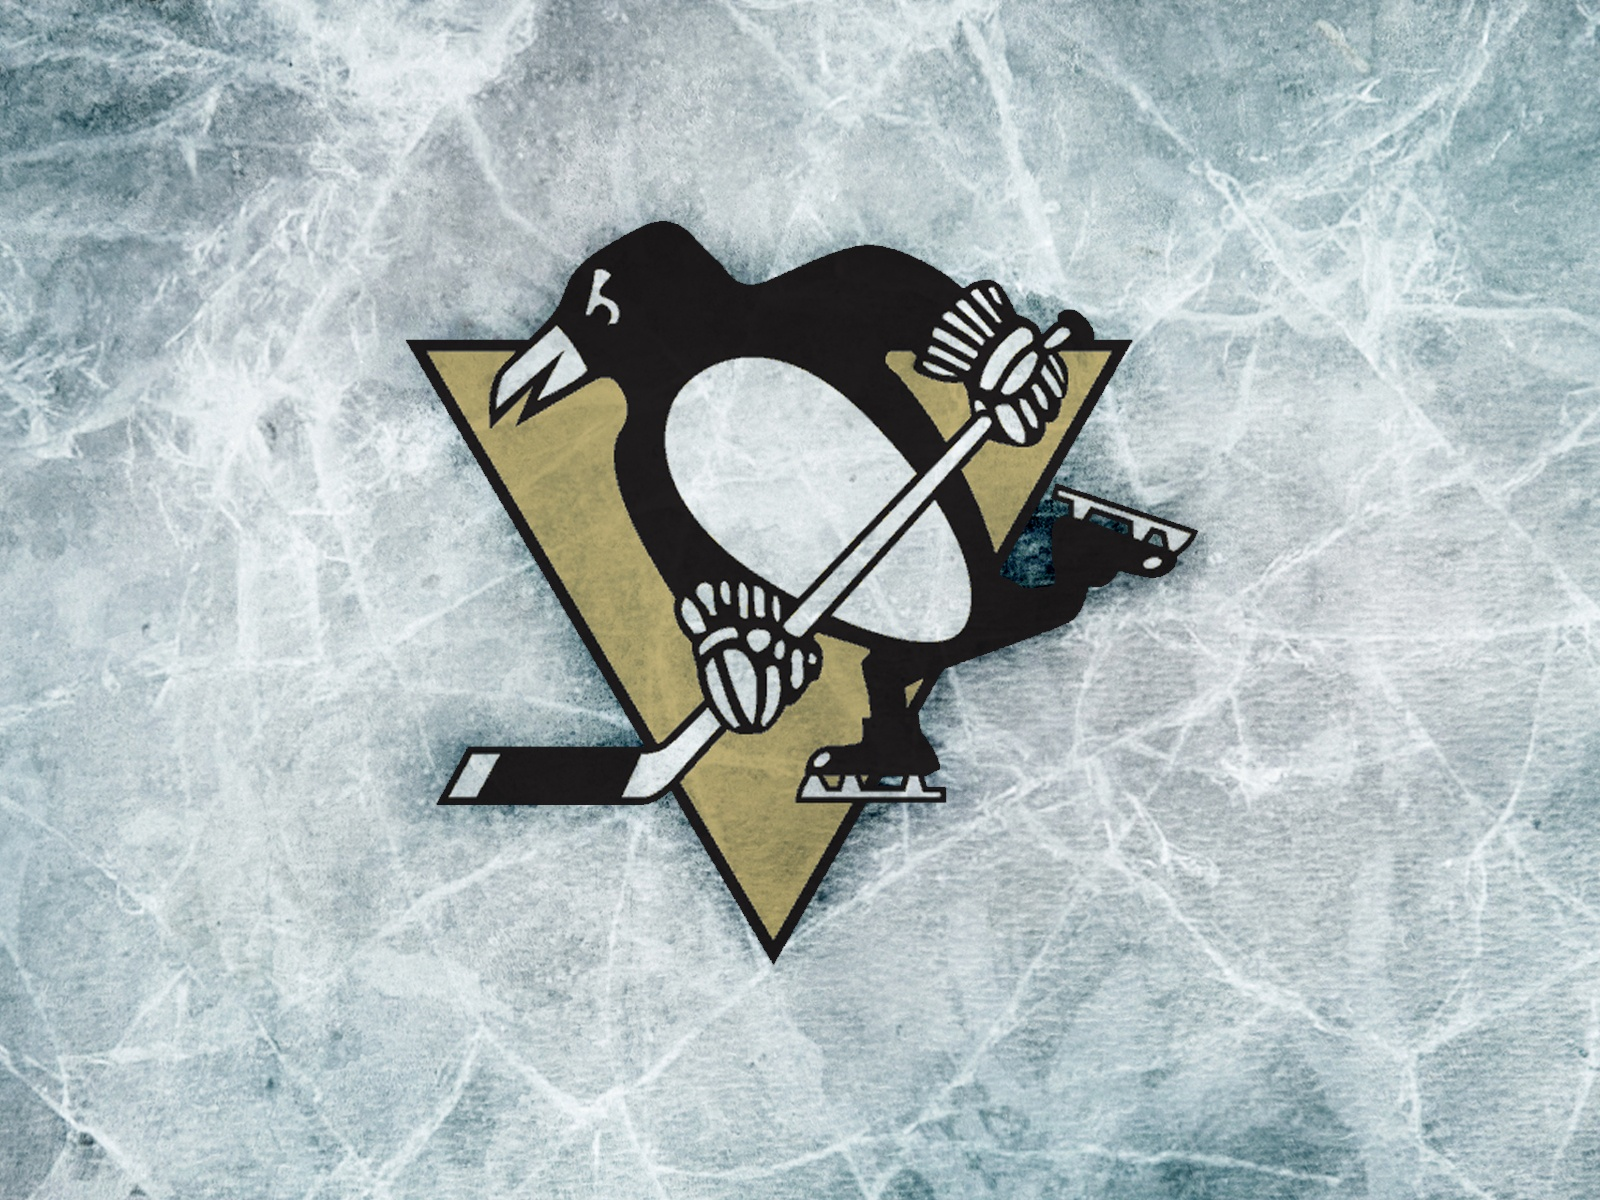 If you are looking for Pittsburgh Penguins images, today is your lucky day!! :D